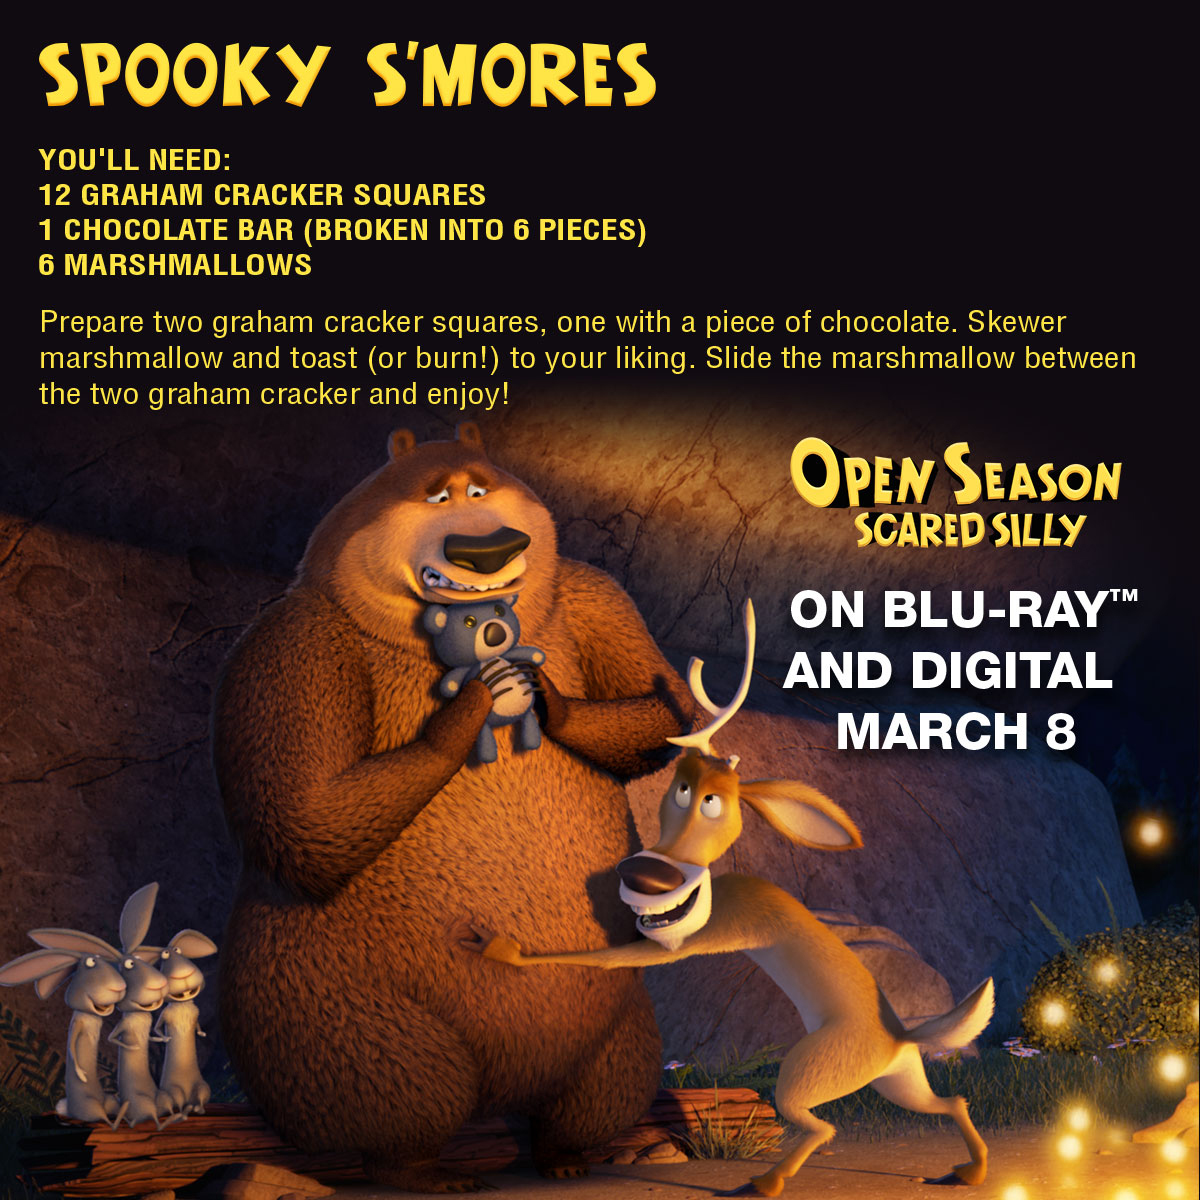 Open Season Scared Silly Spooky Smores